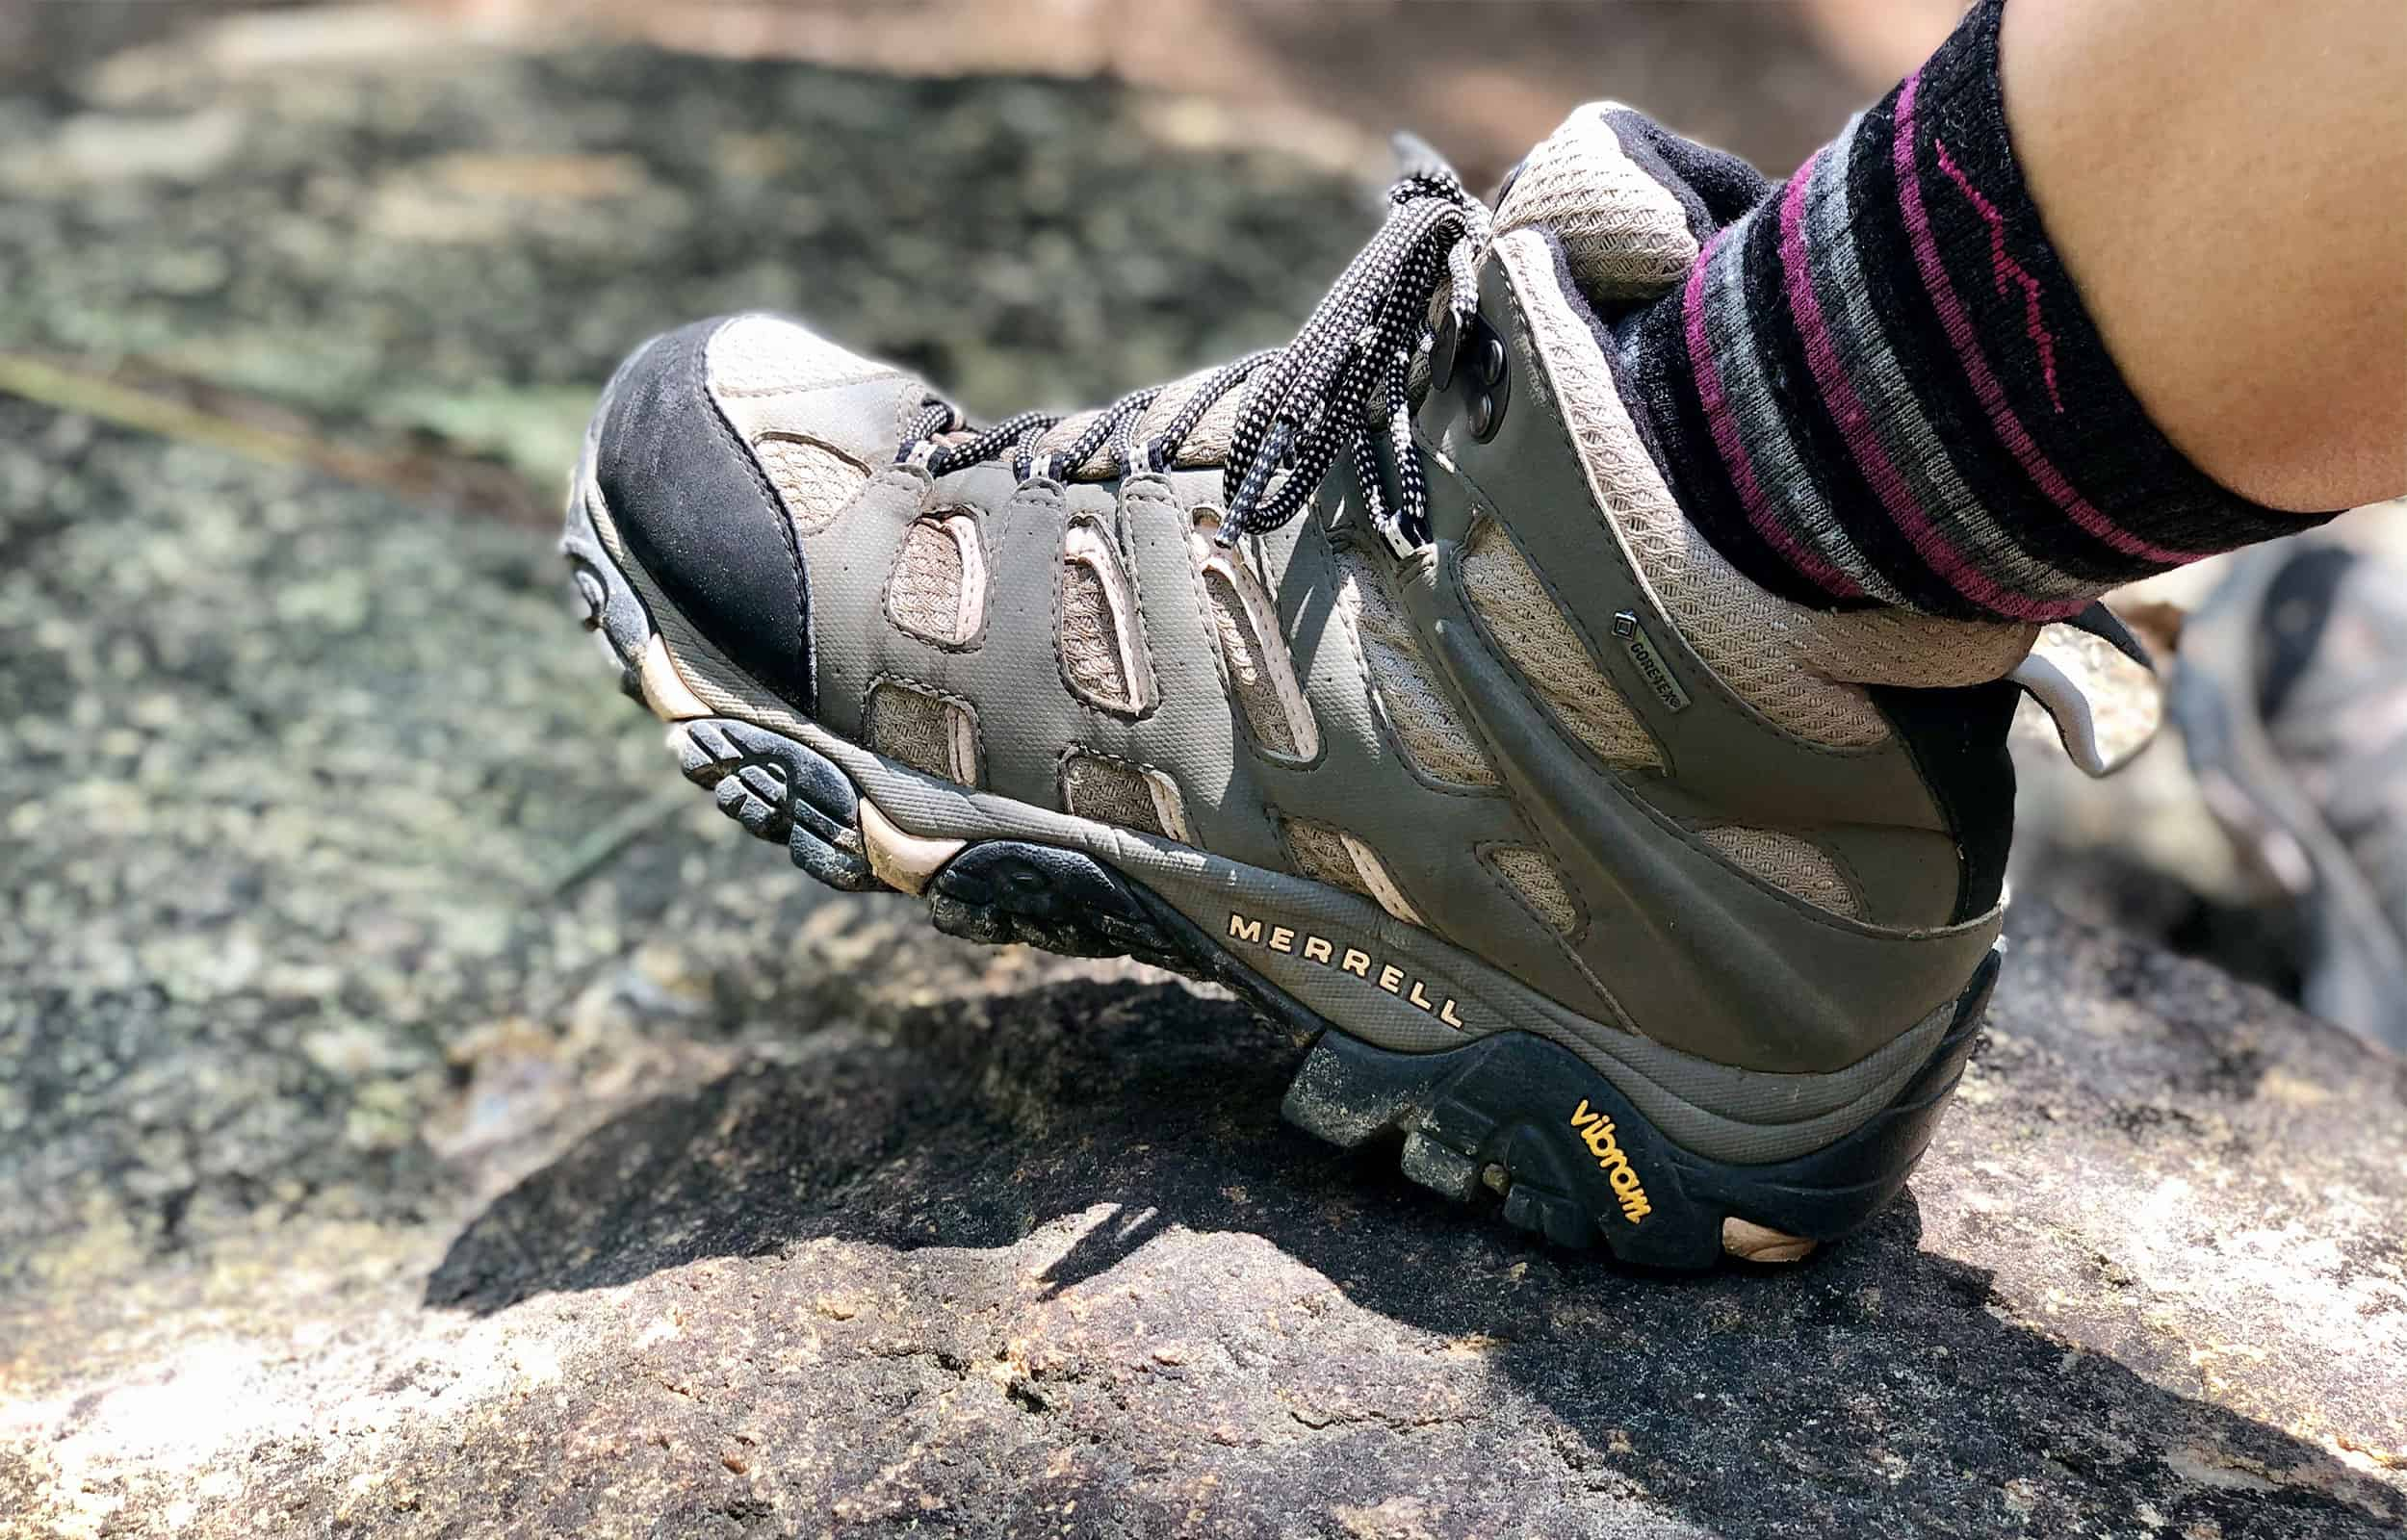 side view of merrell moab shoes